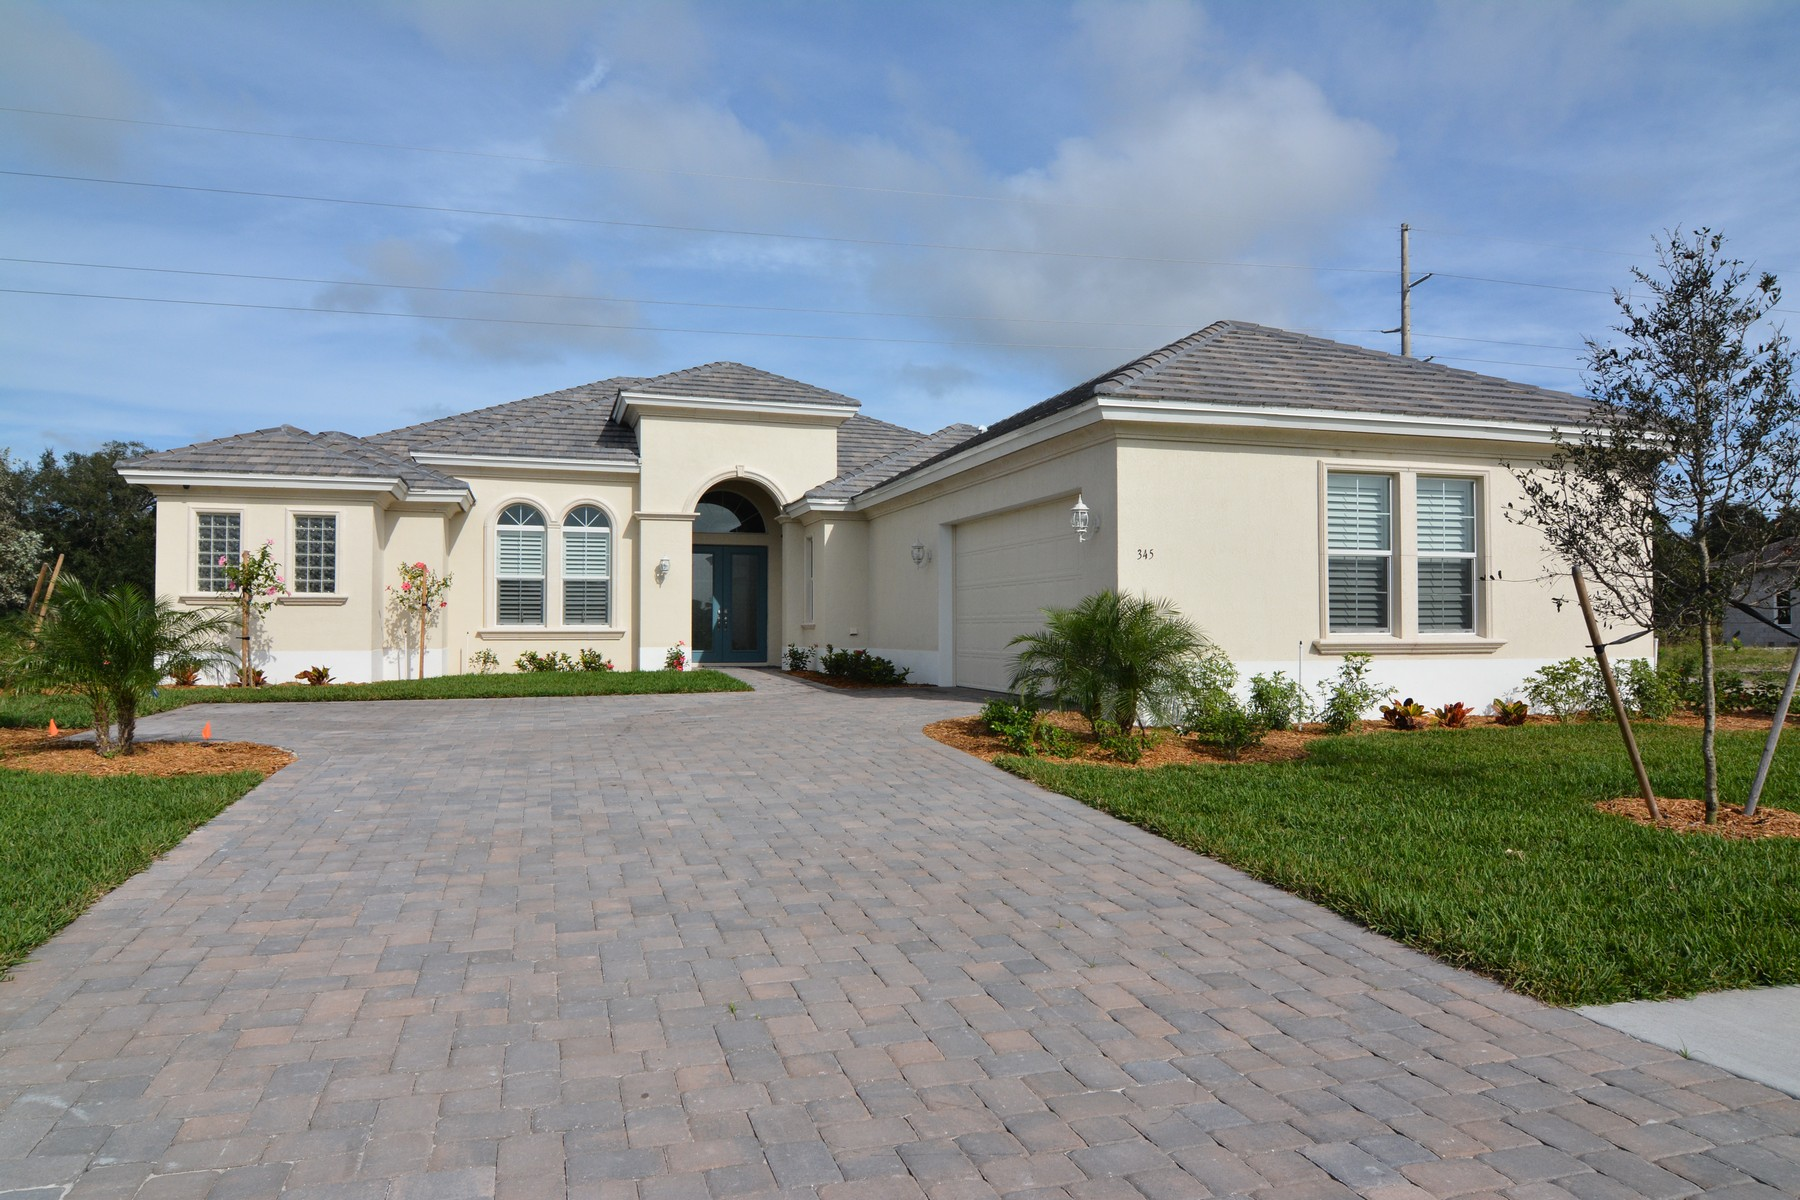 Single Family Home for Sale at Personalize this To Be Built Home! 4520 Black Bear Court Vero Beach, Florida, 32967 United States